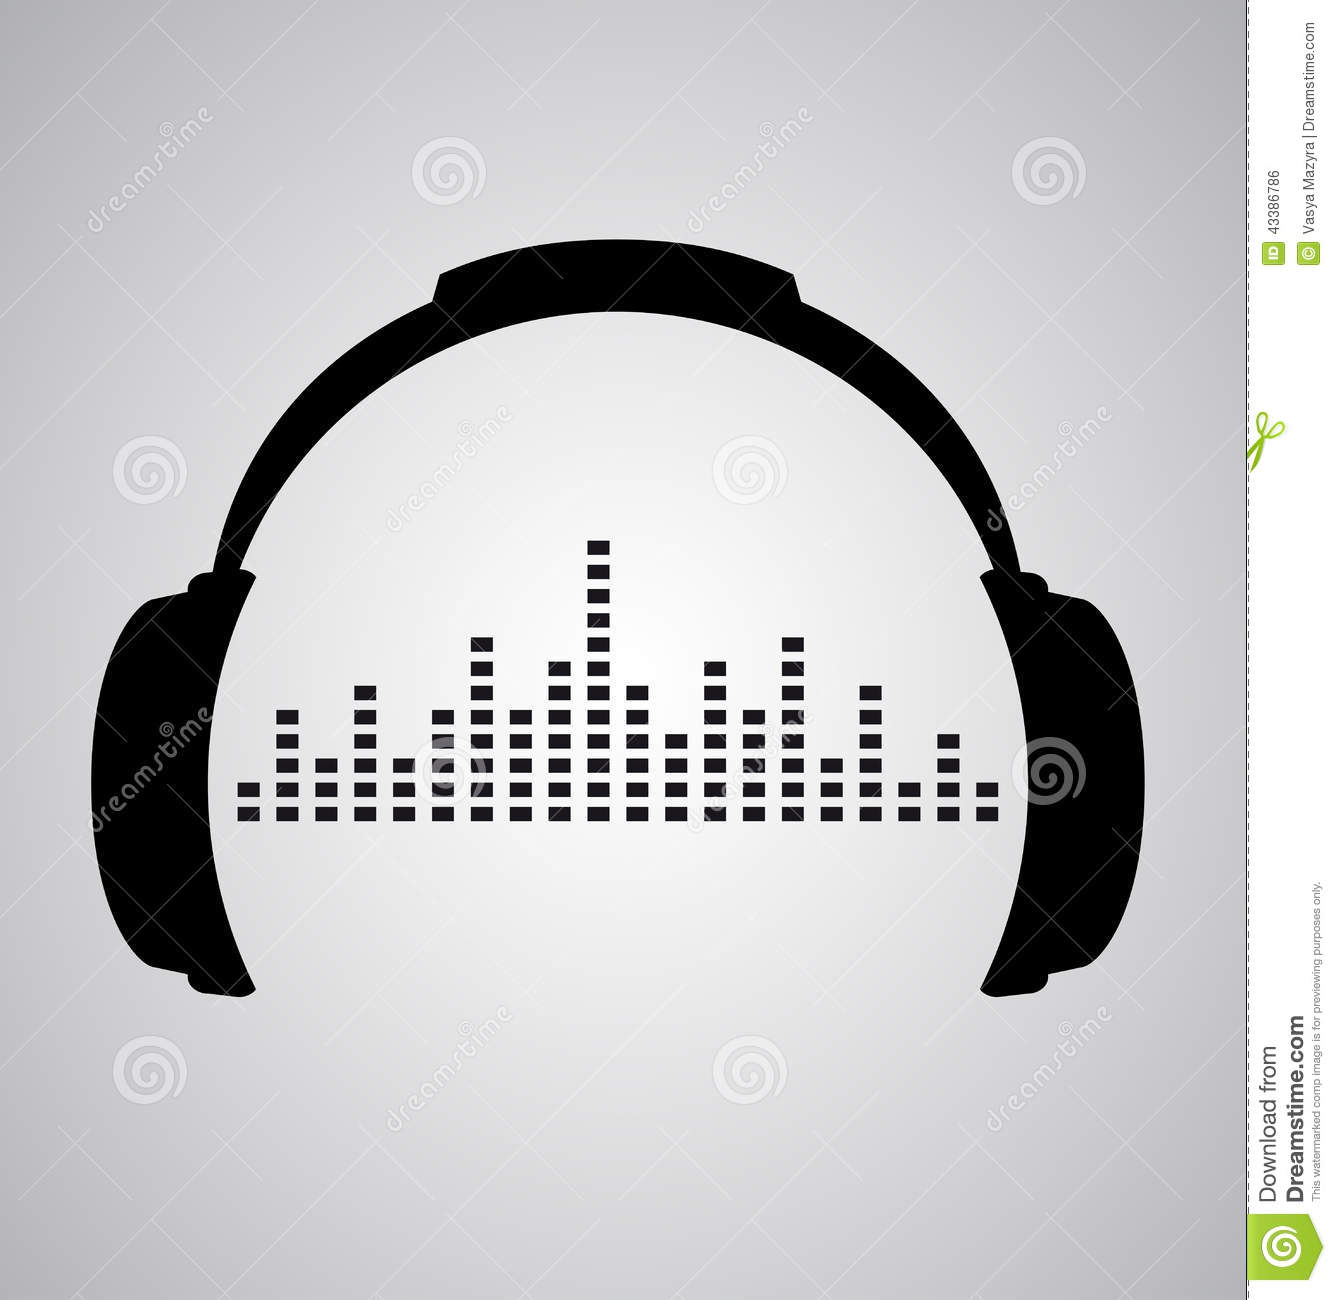 DJ clipart beats headphone Sound Beats Icon clipart Wave